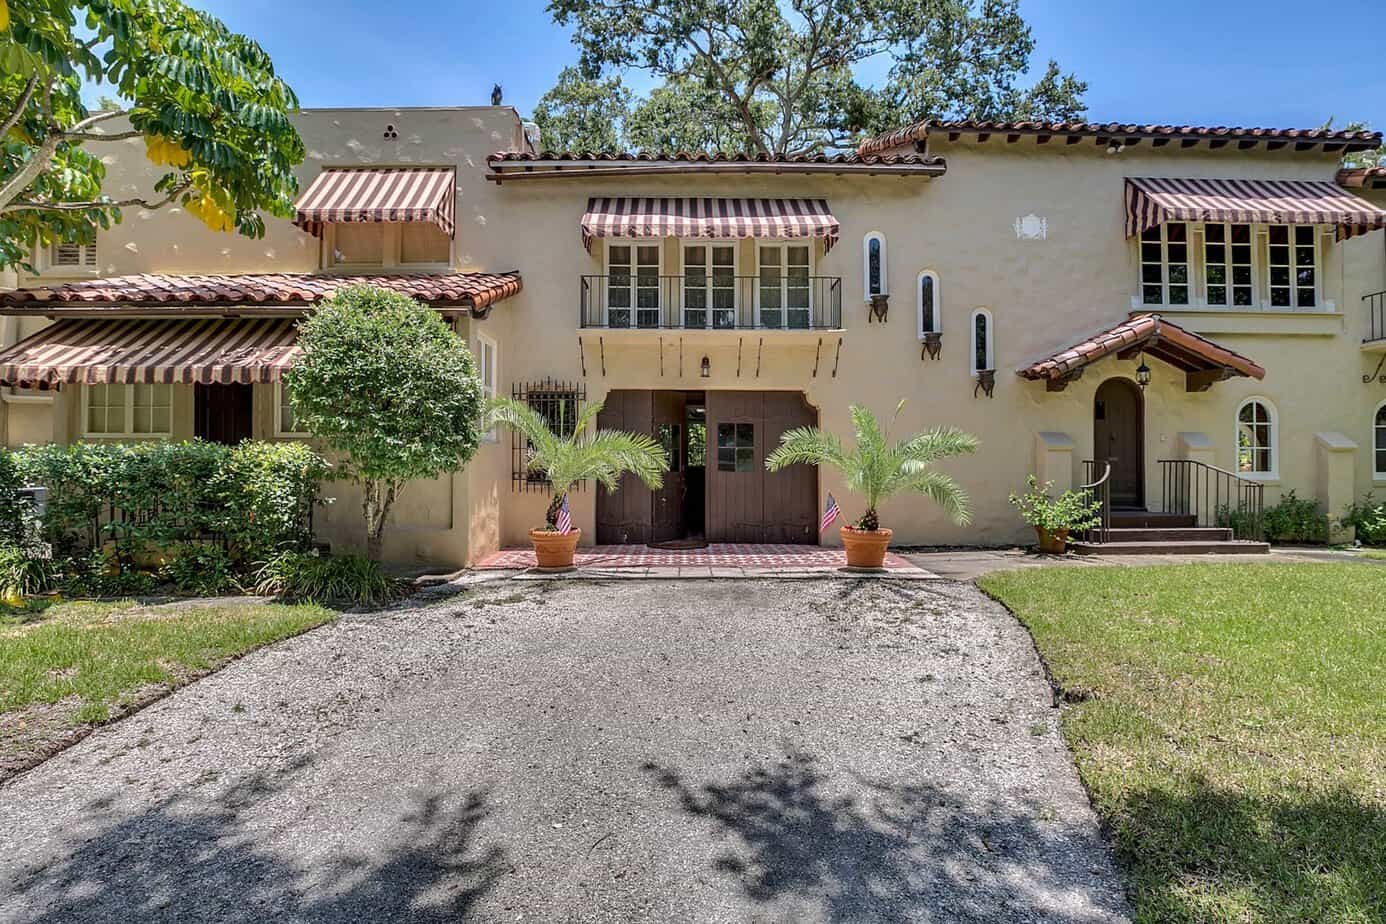 Exterior of luxury florida Mediterranean home with driveway, grass, balconies, windows, and tile barrel roof